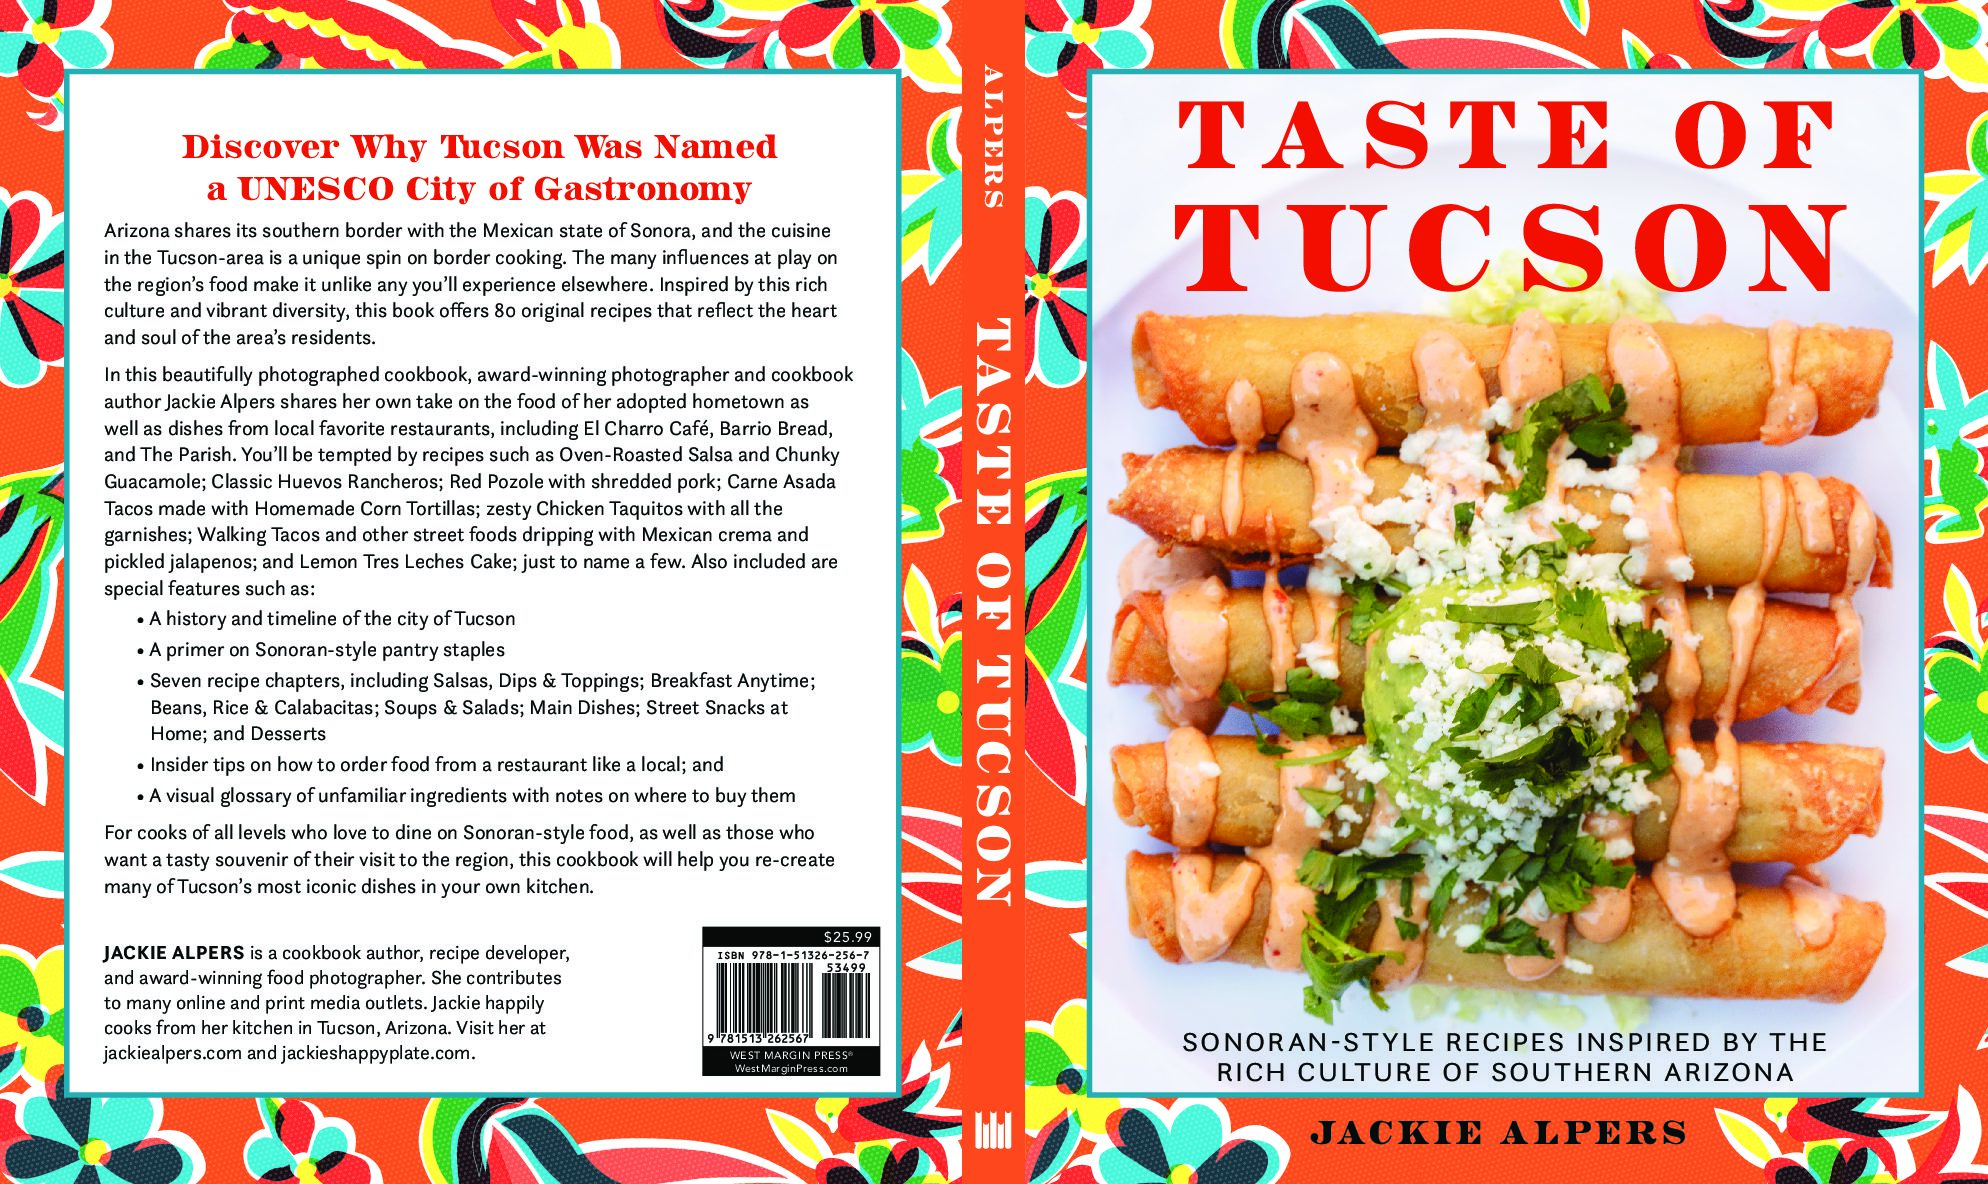 Taste of Tucson Sonoran Style Recipes Inspired by the Rich Culture of Southern Arizona